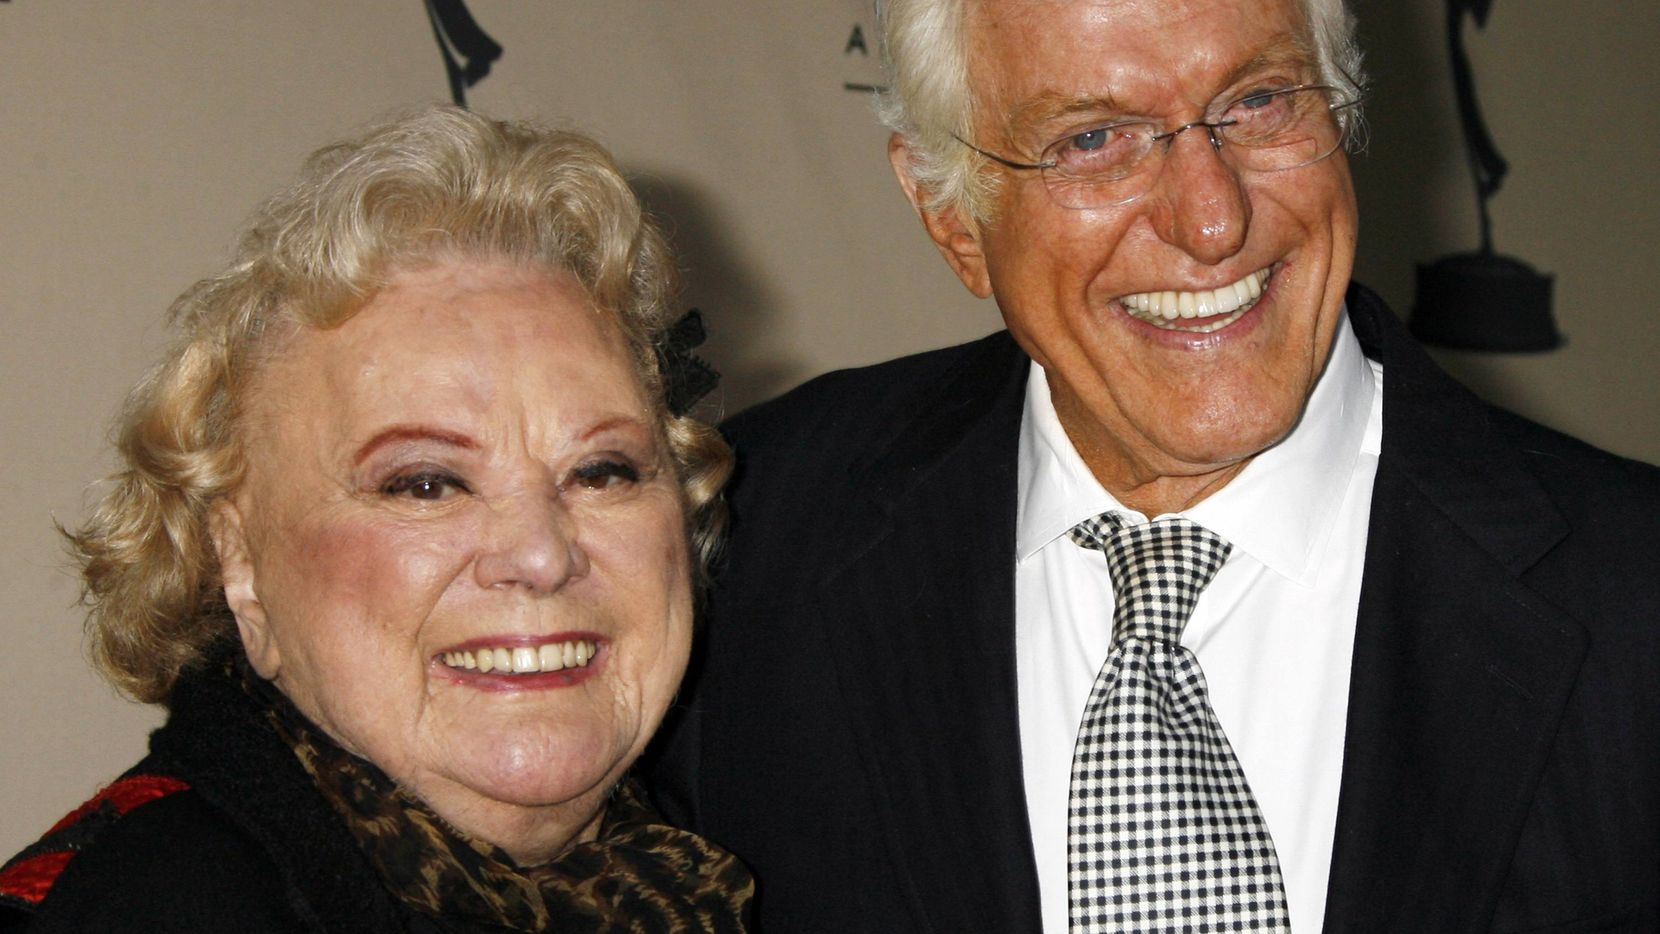 ORG XMIT: *S0418131267* Actors Rose Marie (L) and Dick Van Dyke, who starred in the 1960's television comedy series 'The Dick Van Dyke Show,' pose as they arrive for '60 Years A Restrospective of the Television and The Television Academy' at the Academy of Television Arts & Sciences in Los Angeles October 12, 2006. REUTERS/Fred Prouser   (UNITED STATES)